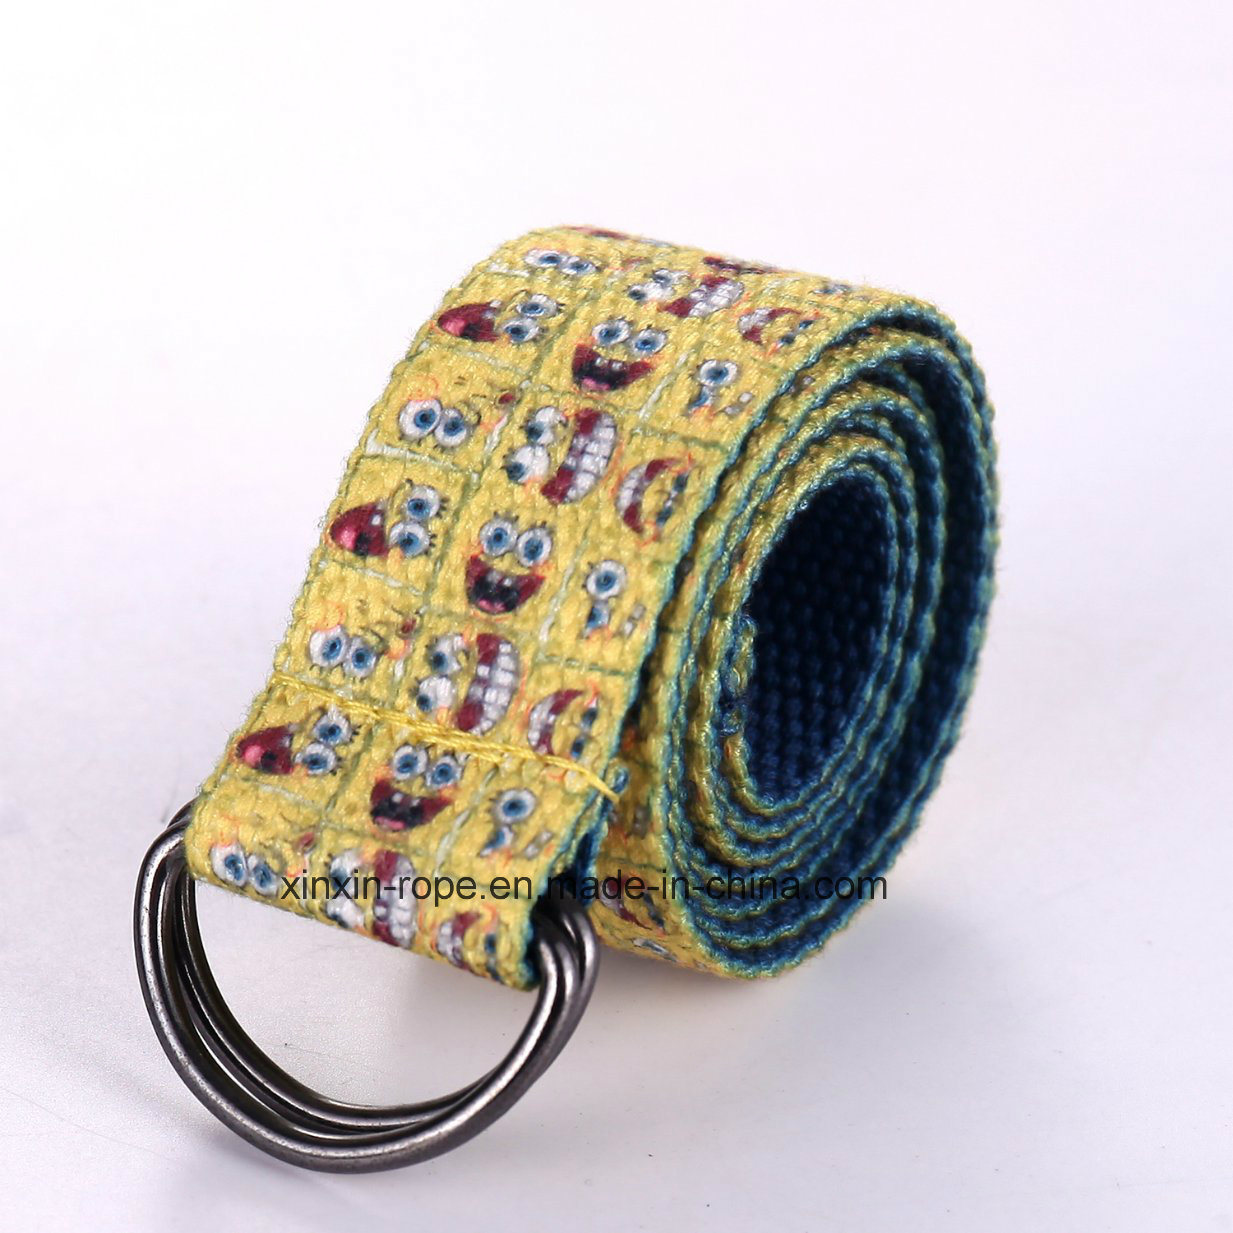 Double Ring Buckle Minions Jacquard Webbing Belt for Child Gift